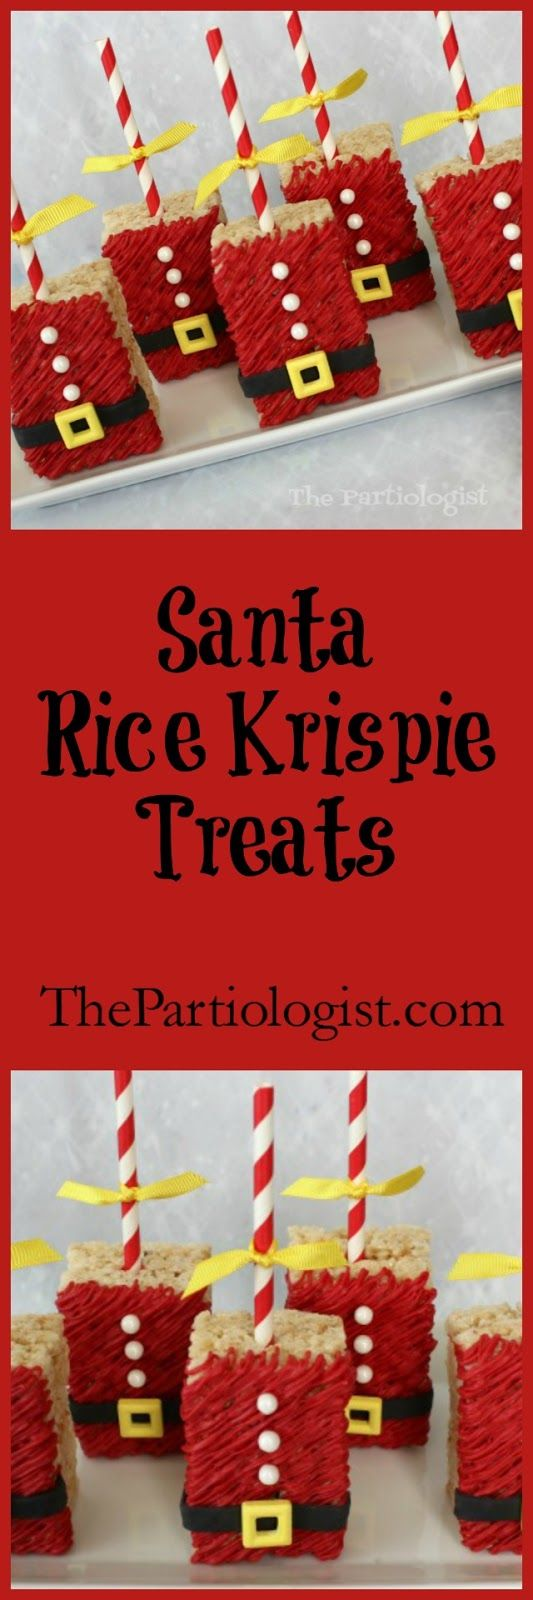 Santa Rice Krispie Treats | The Partiologist - Featured at the Home Matters Linky Party 164